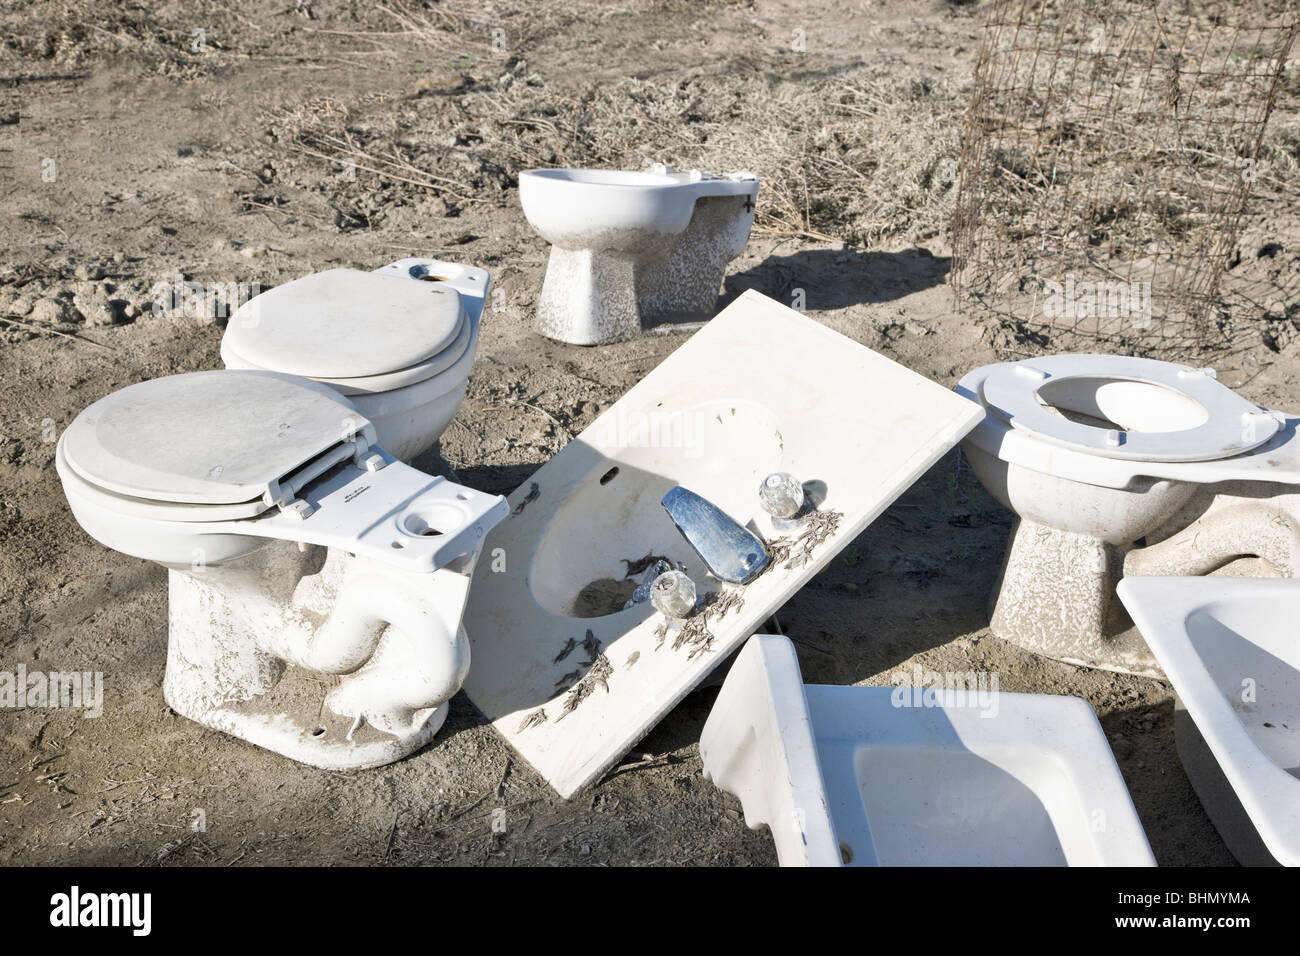 Discarded porcelain toilets & sinks. - Stock Image